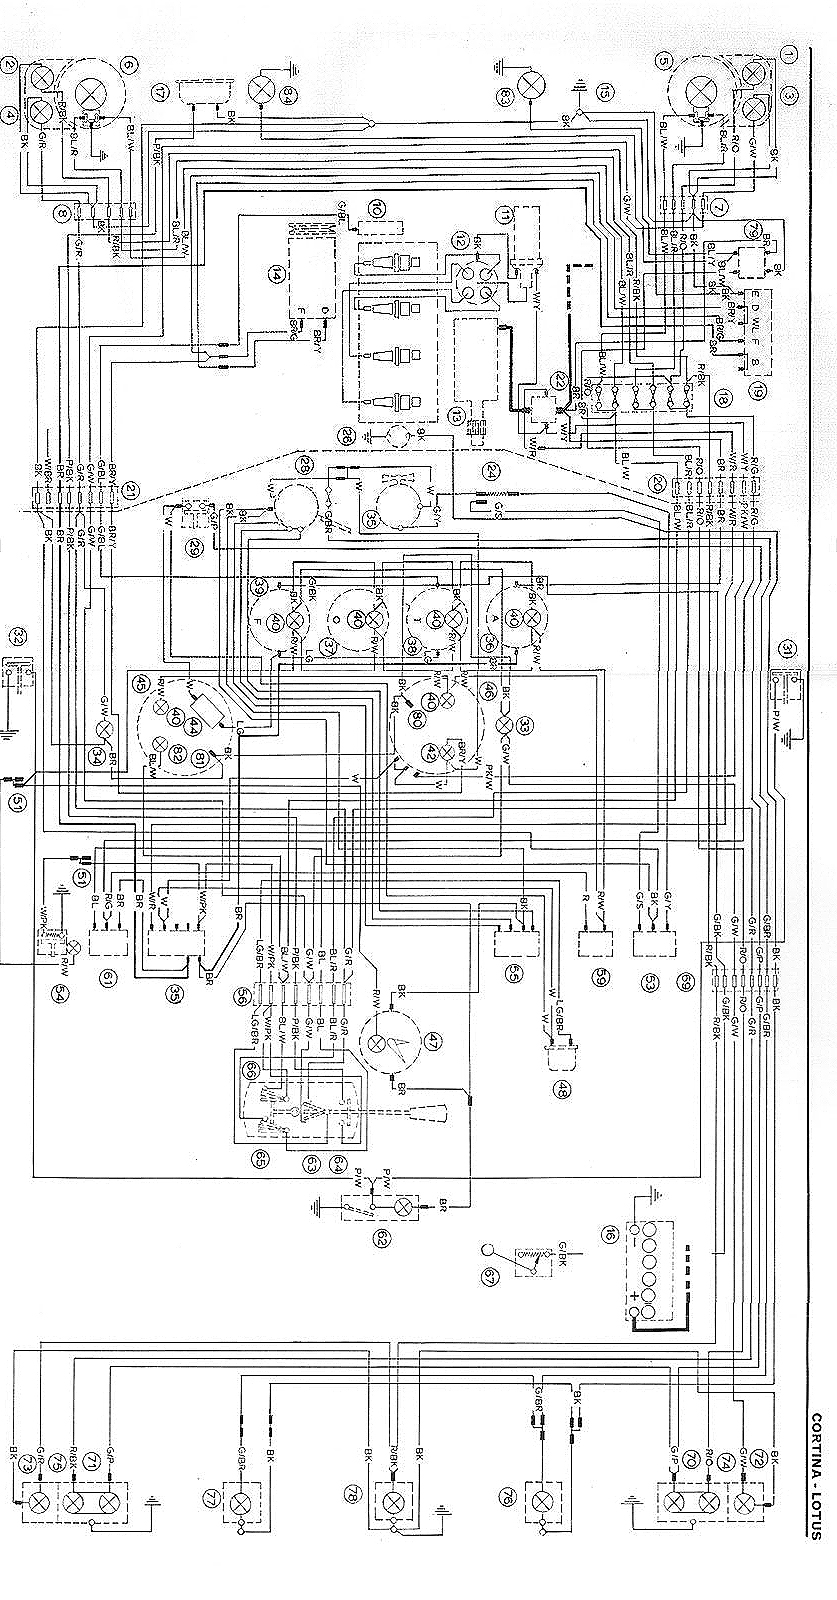 1999 Ford Escort Wiring Diagram from www.lotus-cortina.com